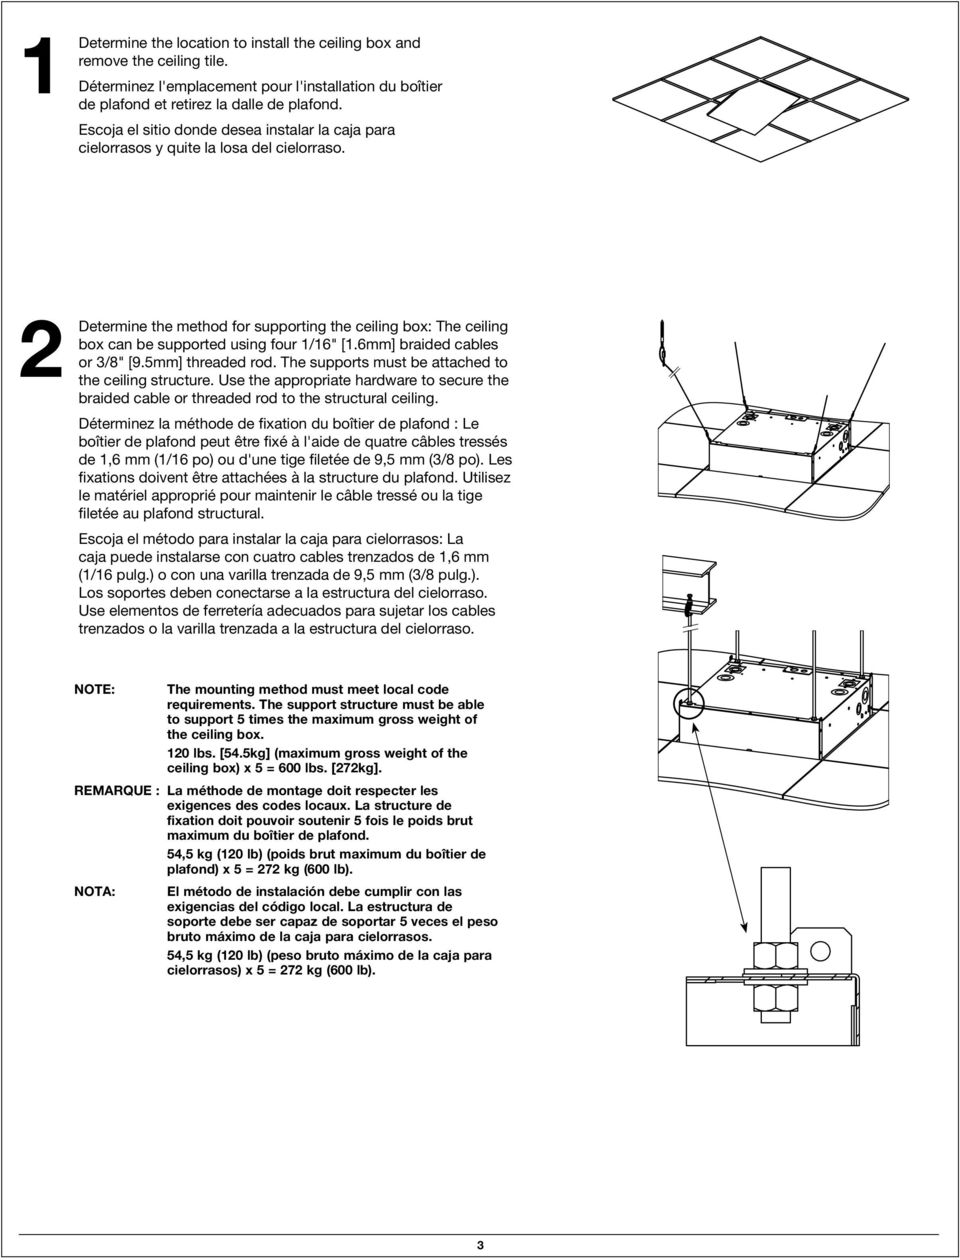 "2 Determine the method for supporting the ceiling box: The ceiling box can be supported using four 1/16"" [1.6mm] braided cables or 3/8"" [9.5mm] threaded rod."